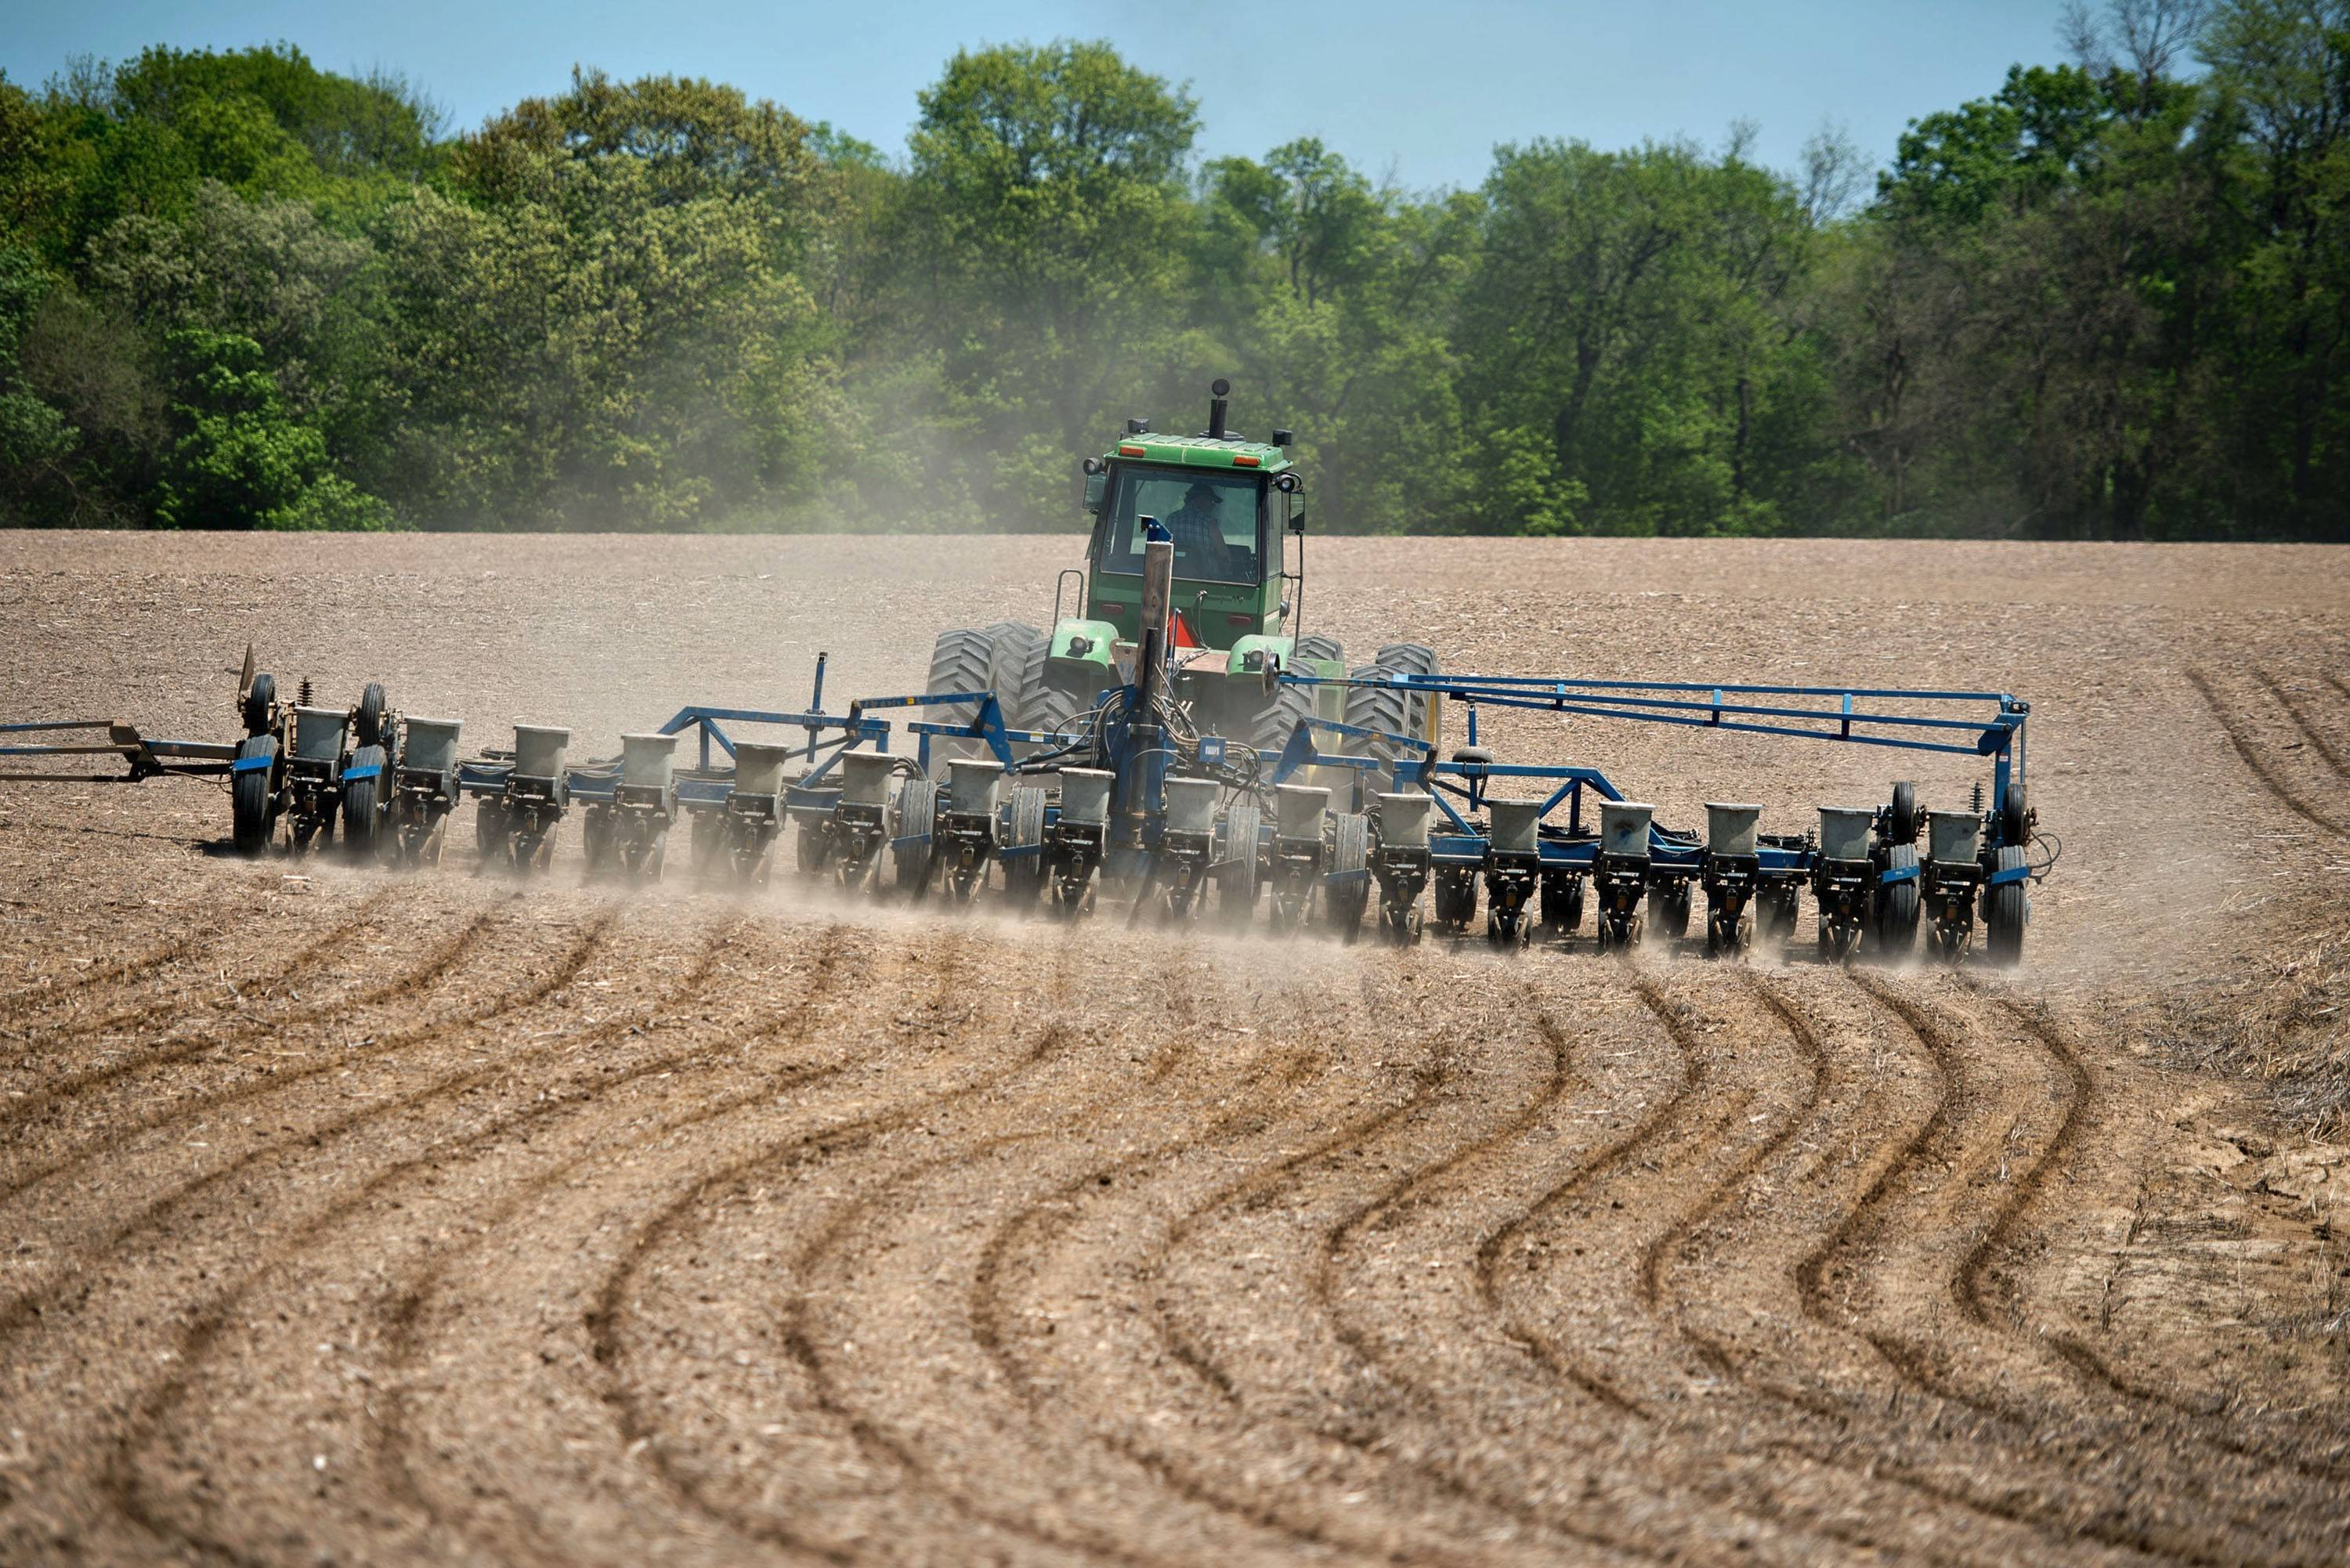 In defense of corn, our most indispensable crop. Corn is planted in a field in the Midwest. Illustrates FOOD-CORN-CROP (category d), by Tamar Haspel, special to The Washington Post. Moved Wednesday, July 15, 2015. (MUST CREDIT: Bloomberg News photo by Daniel Acker)